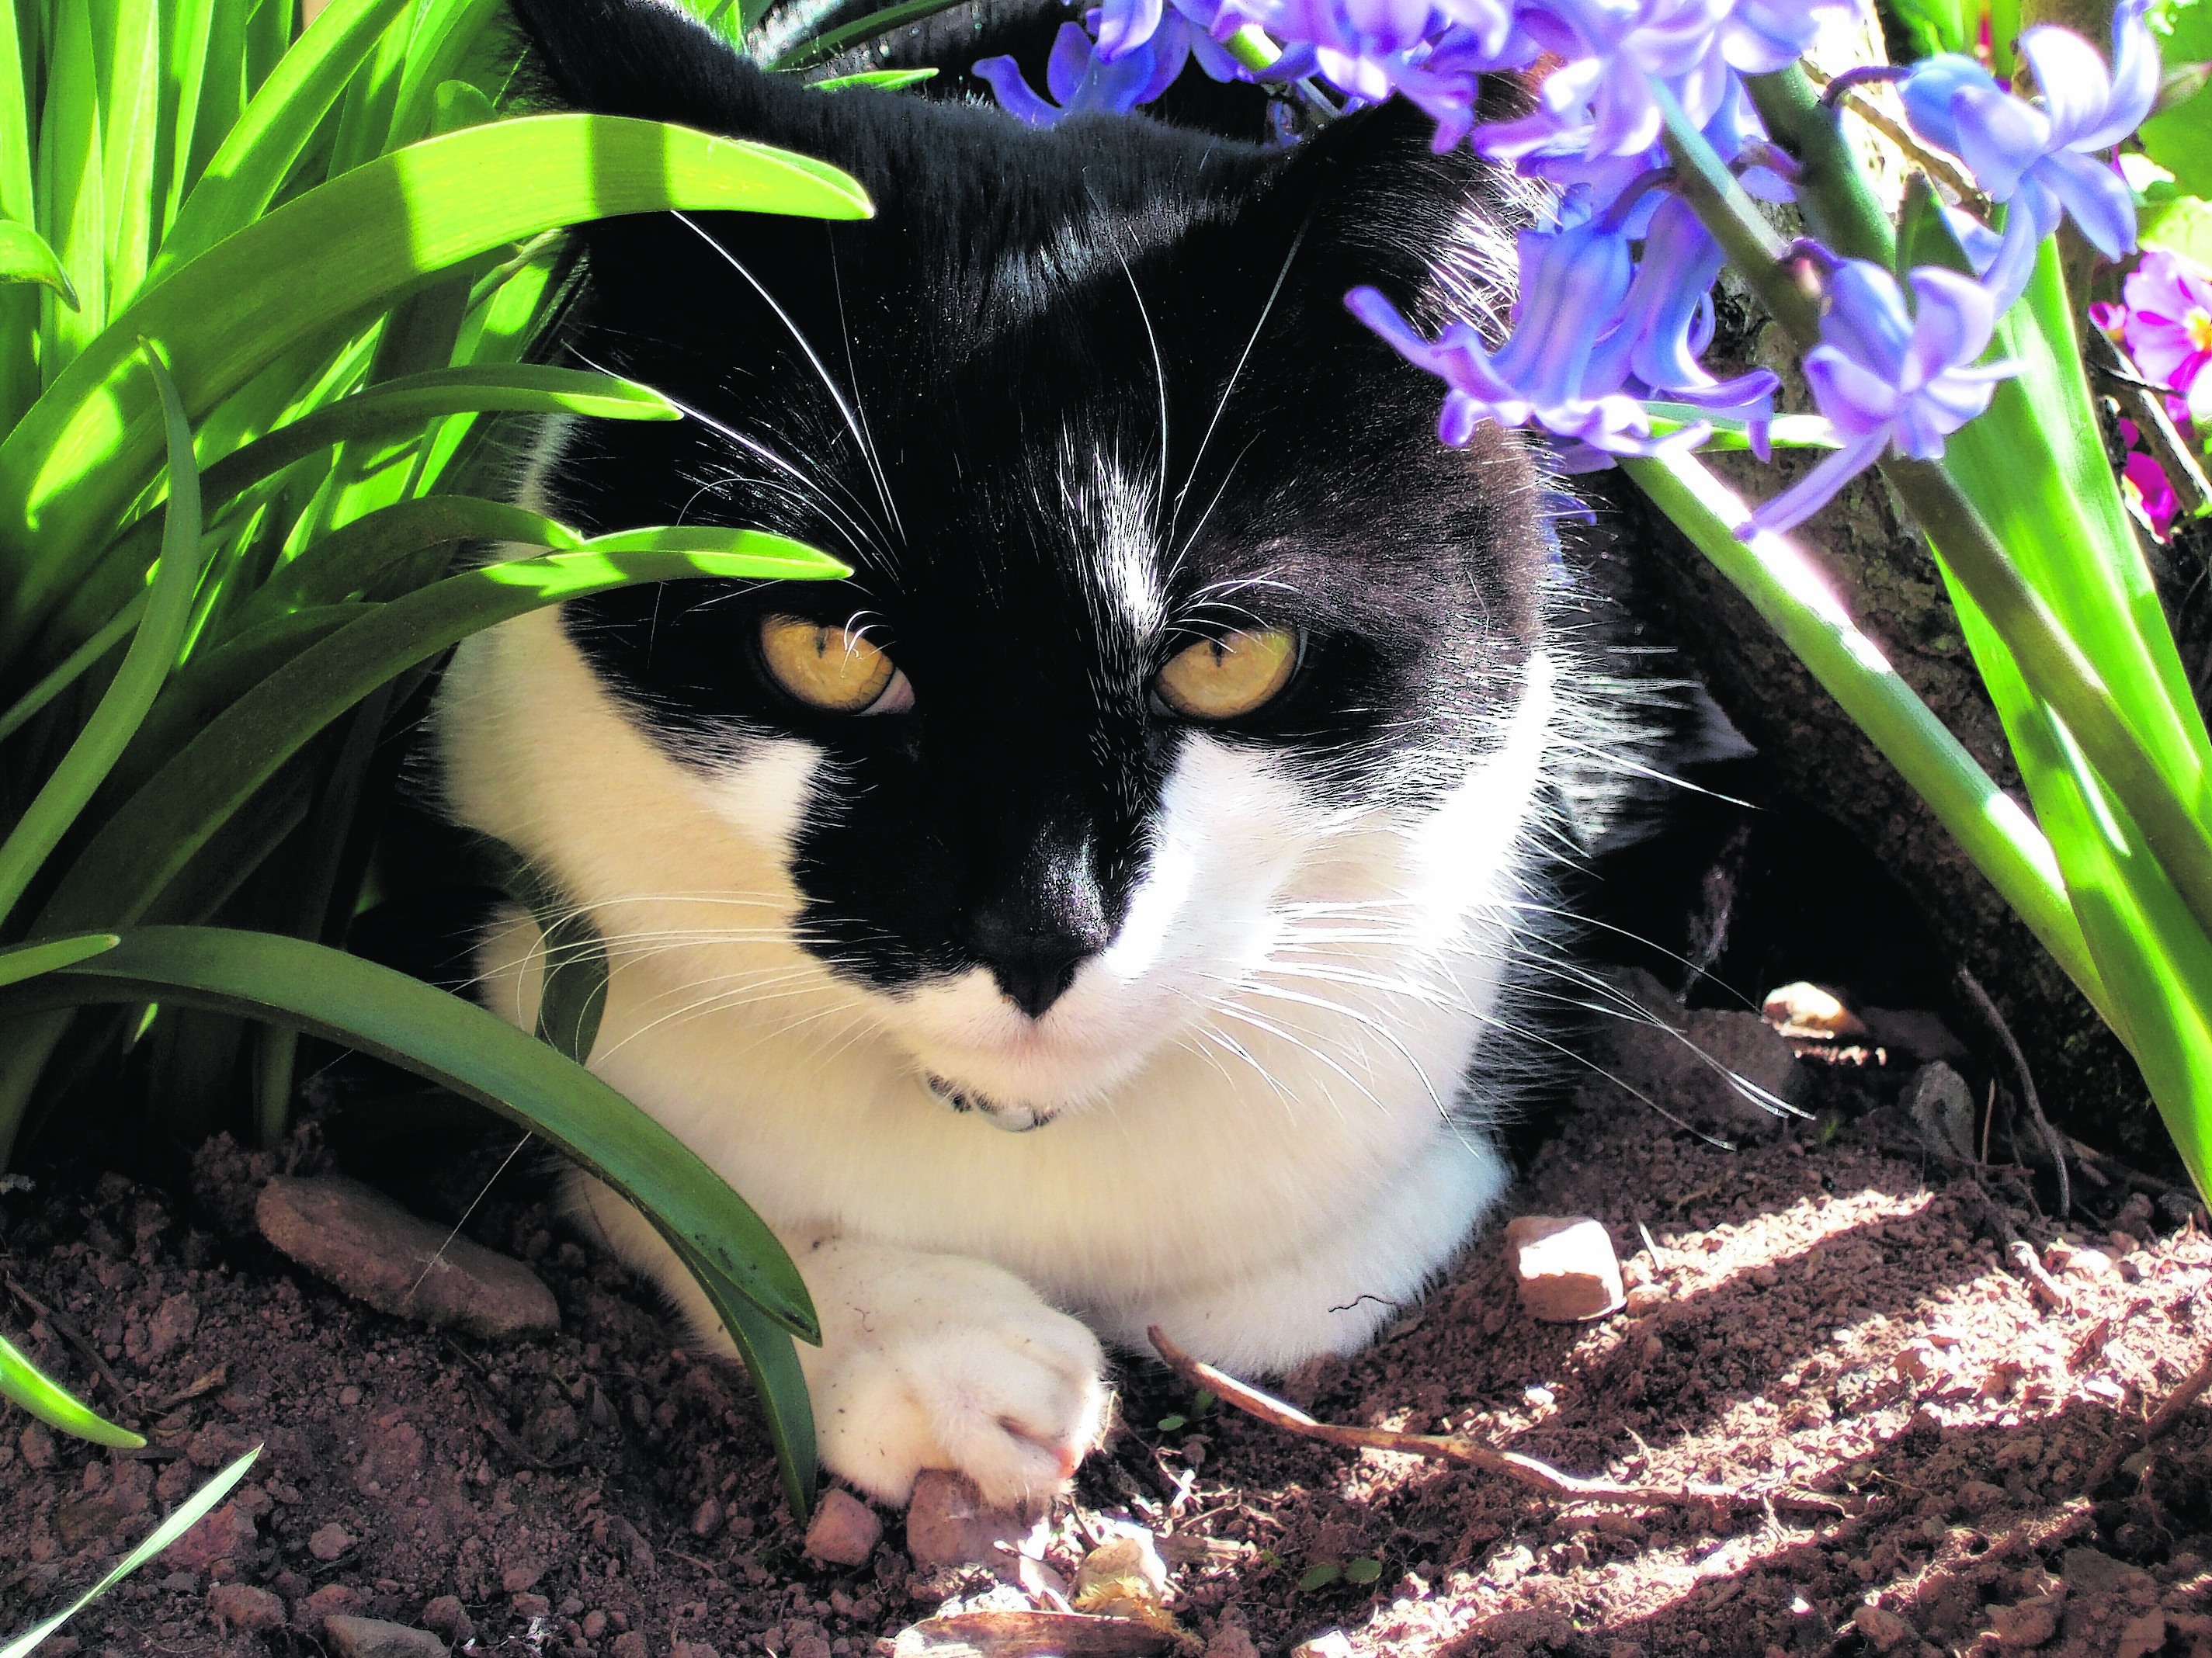 Here is Smudge enjoying the spring sunshine.  He lives with Alexis and Duncan Henderson near Laurencekirk. He is our winner this week.